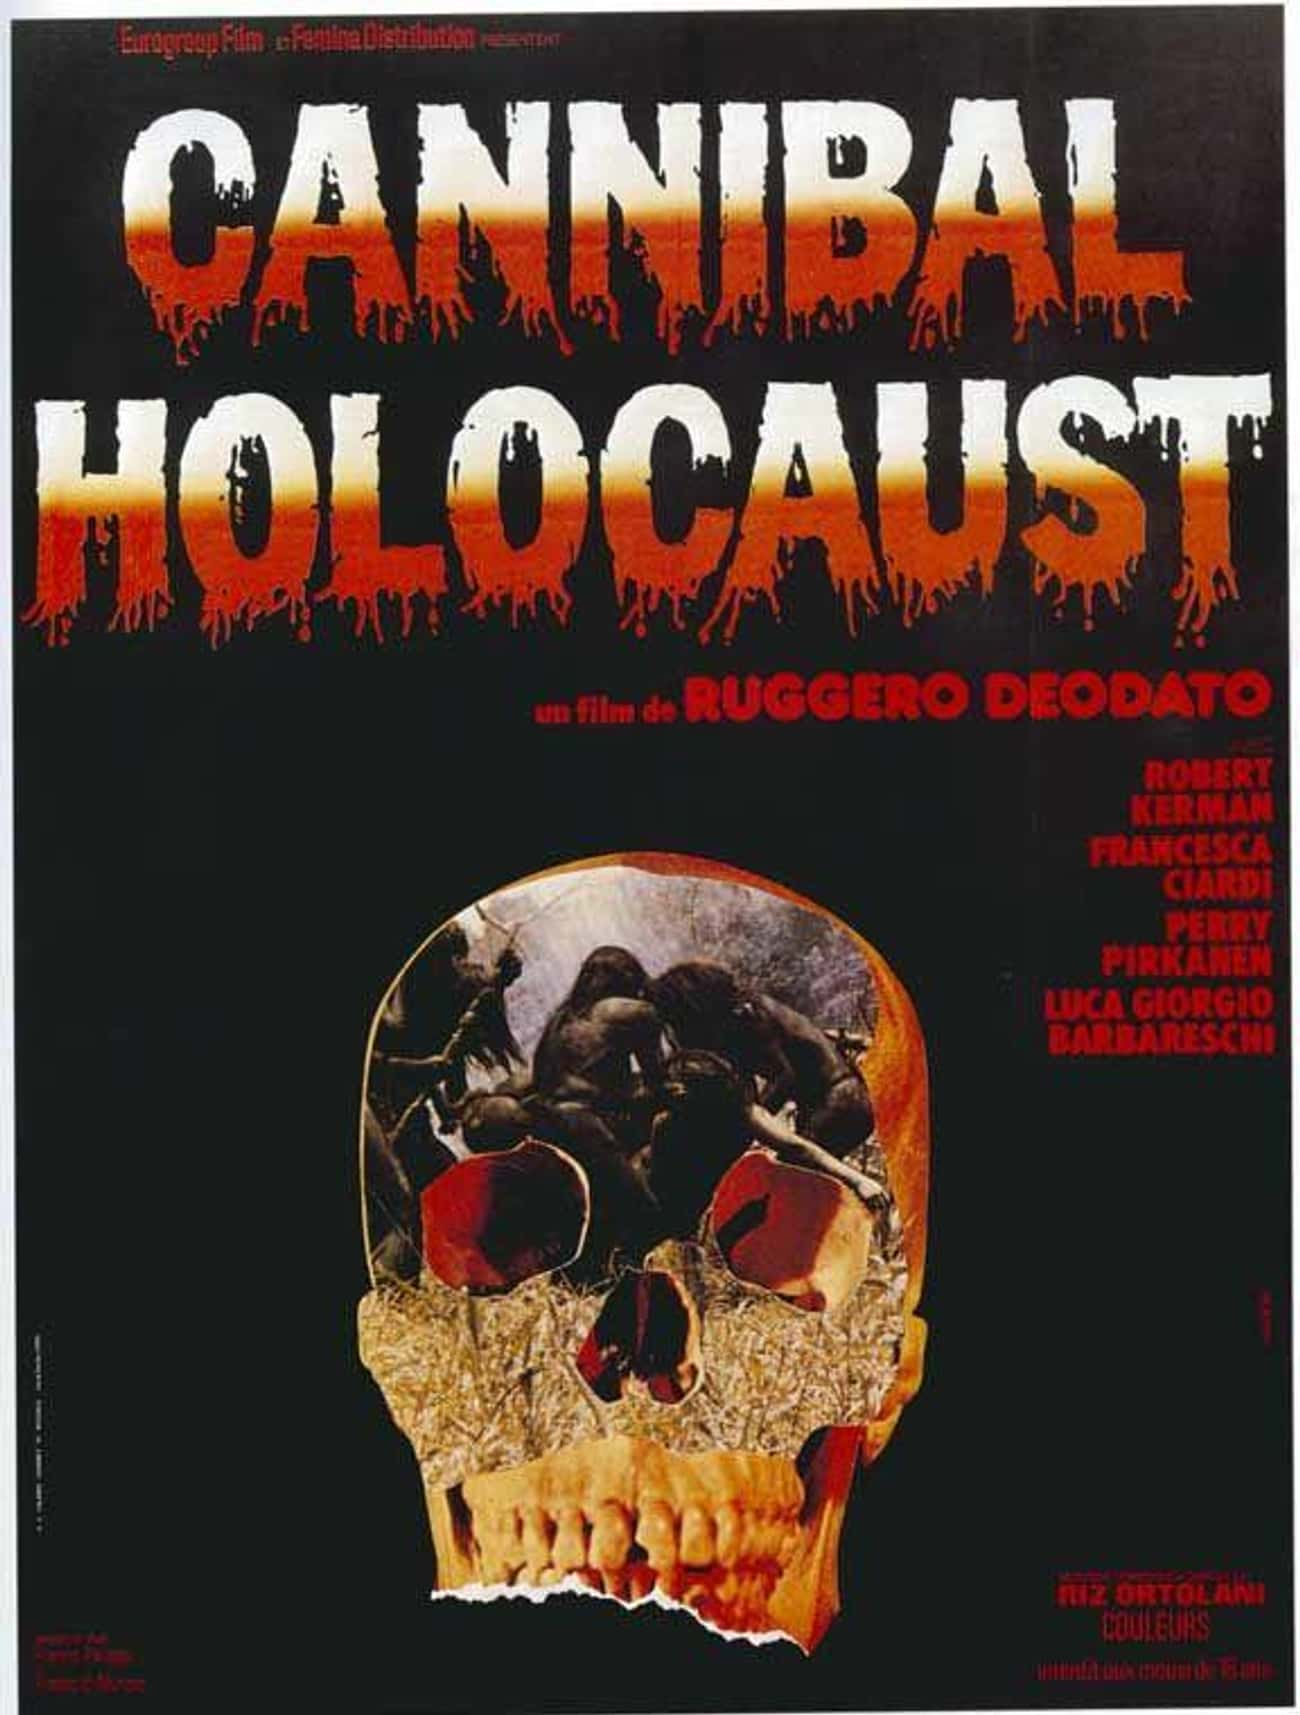 Cannibal Holocaust is listed (or ranked) 1 on the list 12 Horror Movies That Got People Jailed, Punished, or Officially Investigated